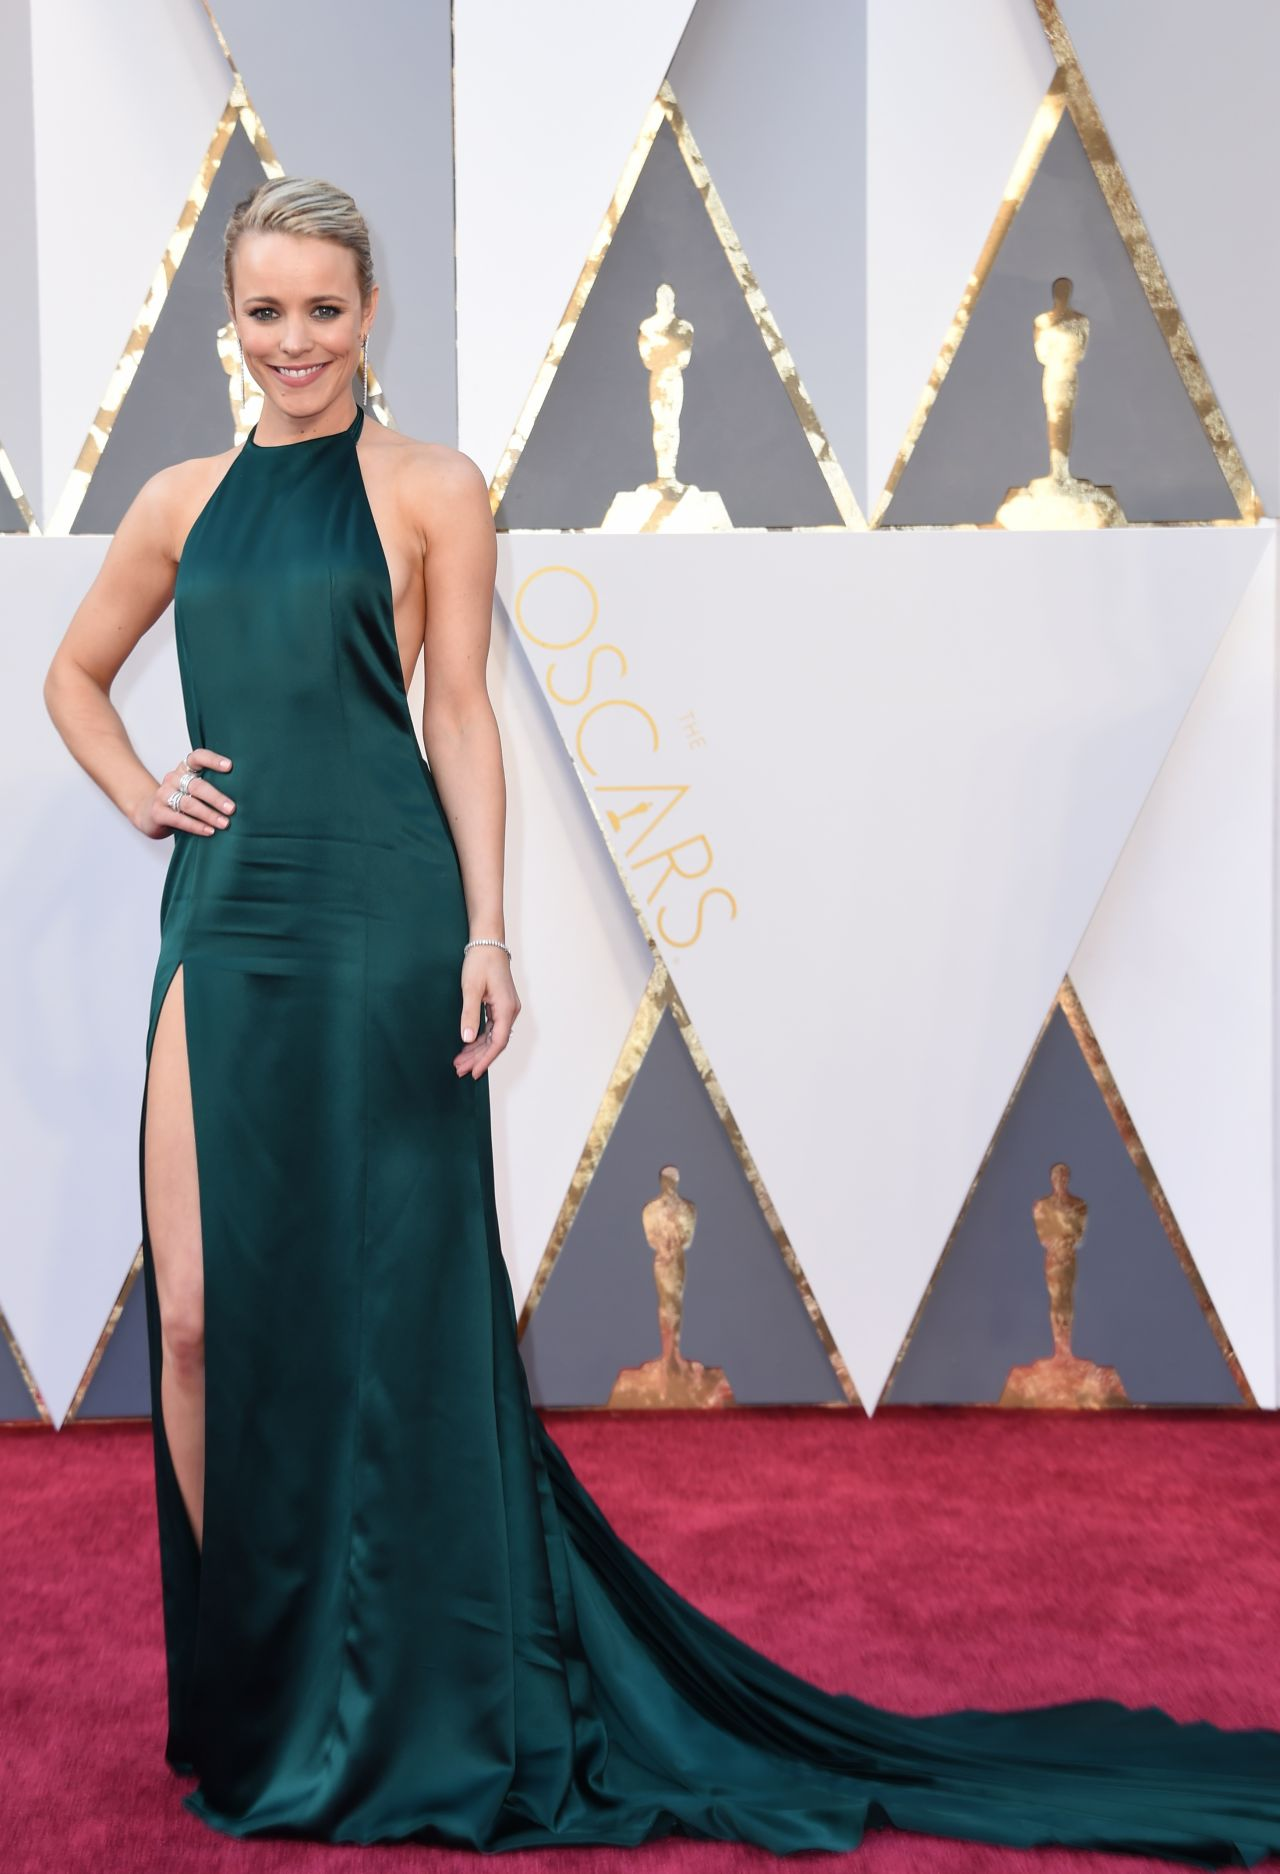 rachel-mcadams-oscars-2016-in-hollywood-ca-2-28-2016-3